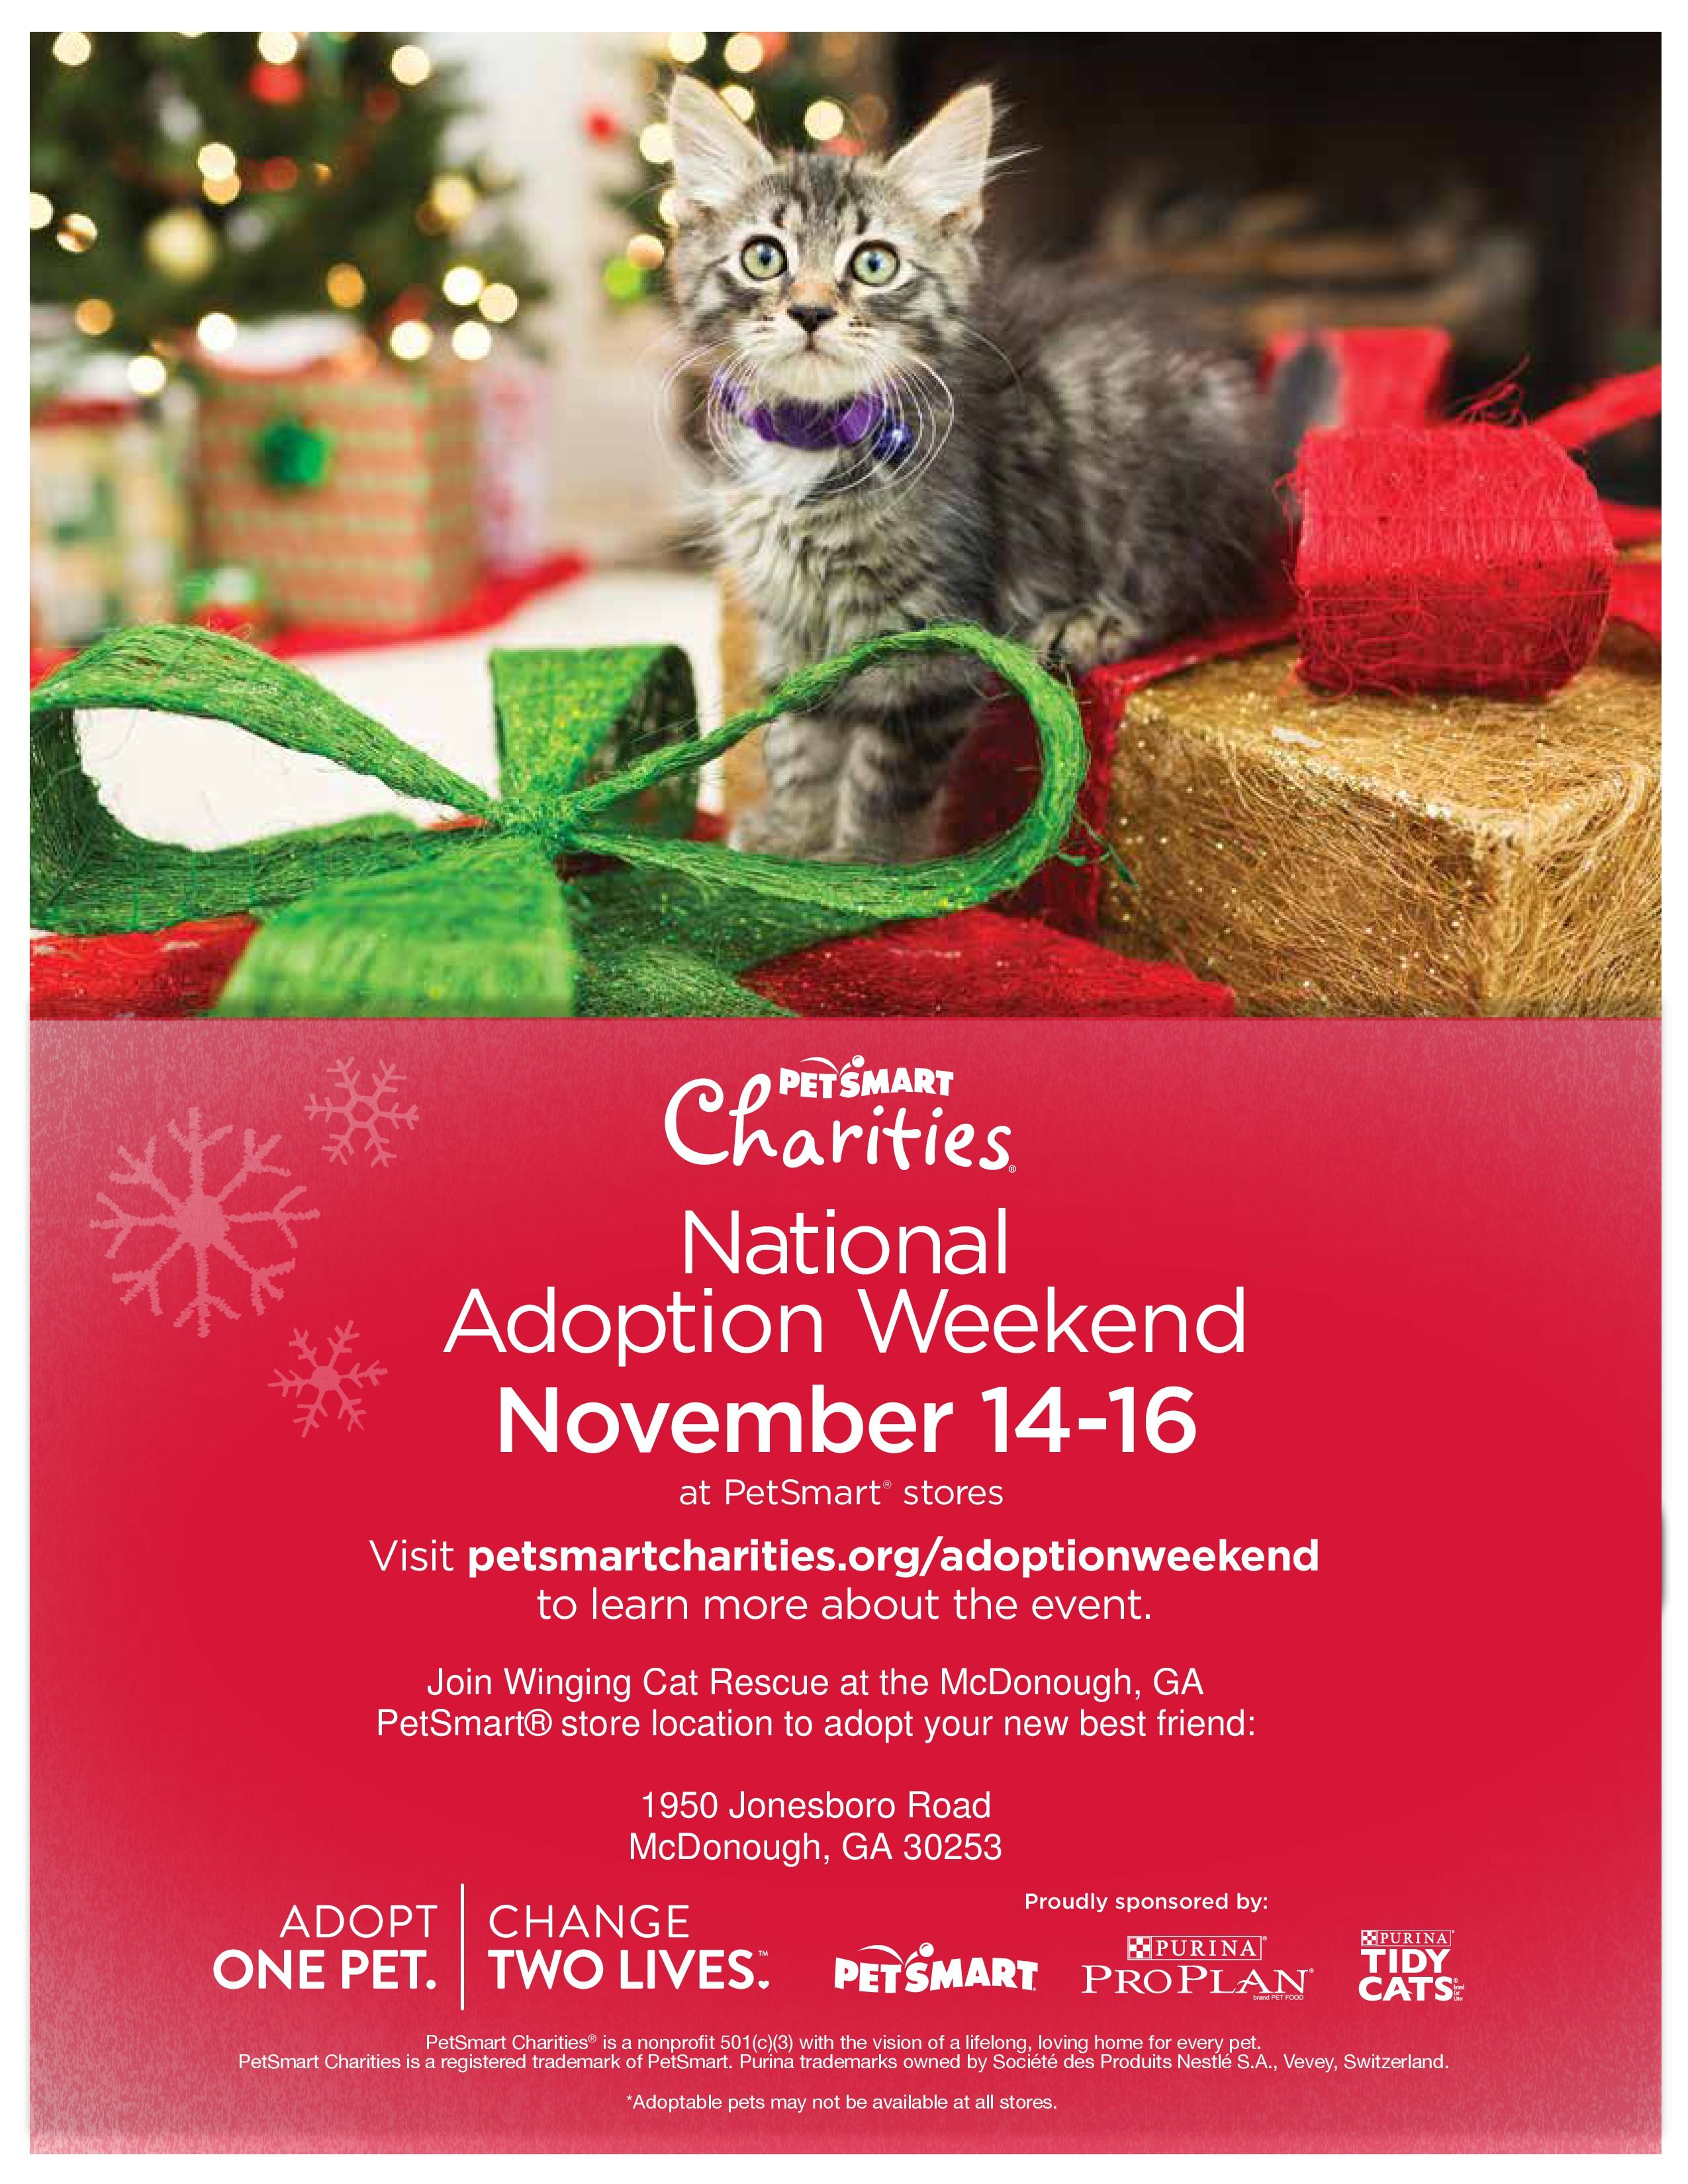 Please Come Meet Your New Best Friend At Petsmart Mcdonough Ga This Weekend Nov 14 16 Lots Of Kittens Cats In Ne Pet Smart Store Petsmart Cats And Kittens